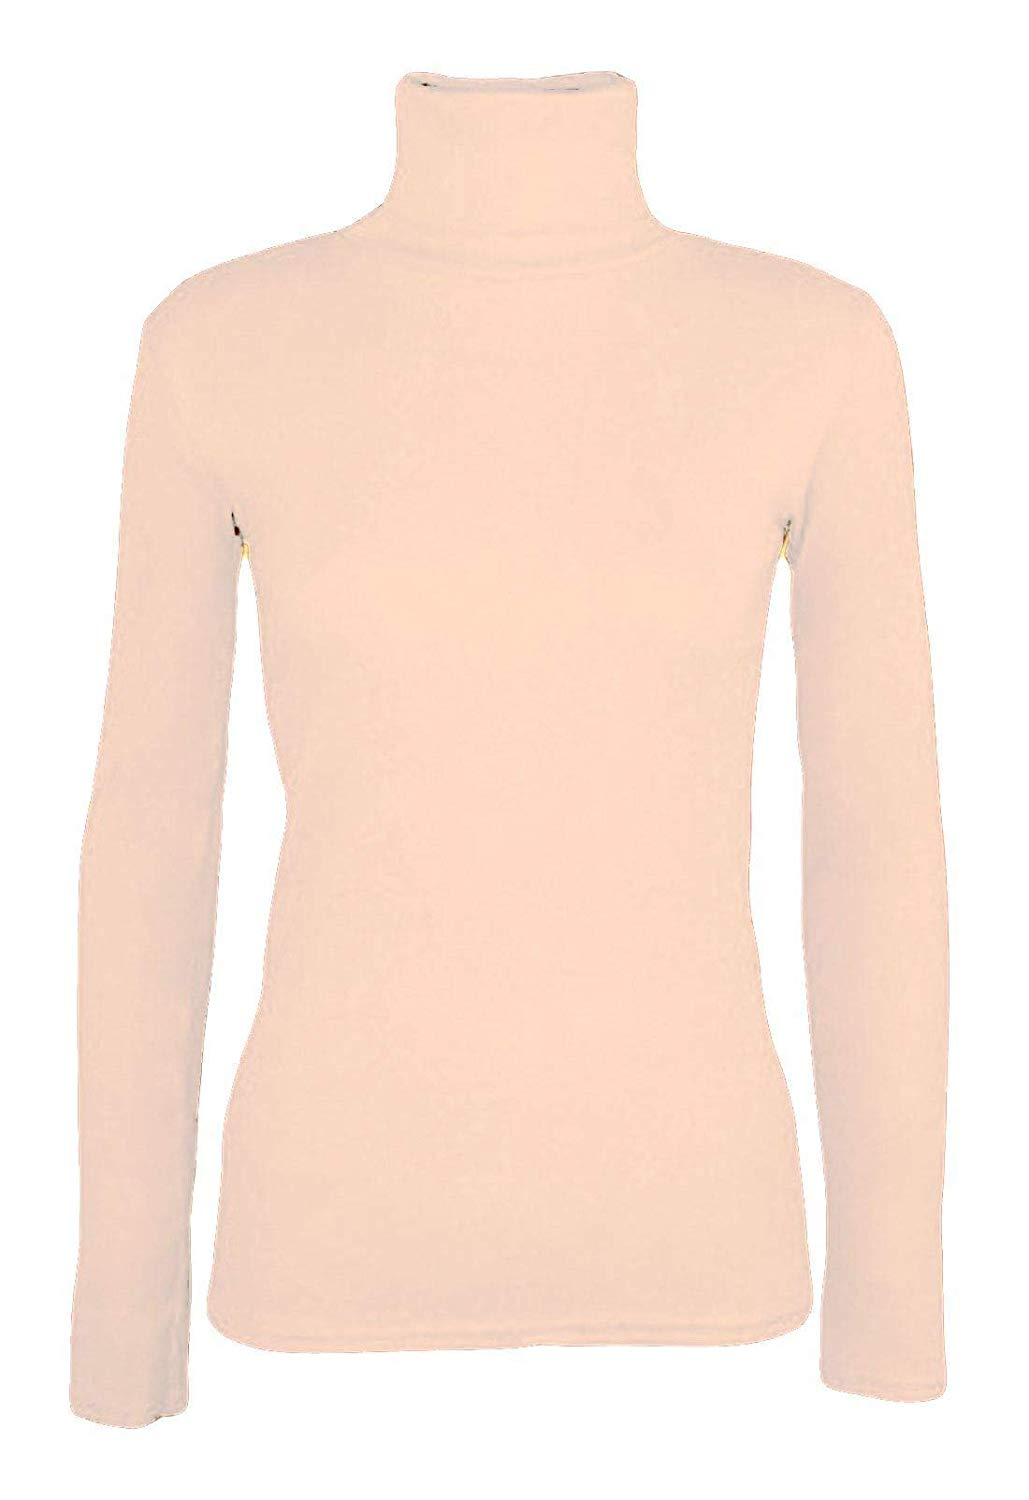 ede40a3630 Ladies Turtle Neck Casual Stretchable Jumper Womens Plain Novelty Jumper Top